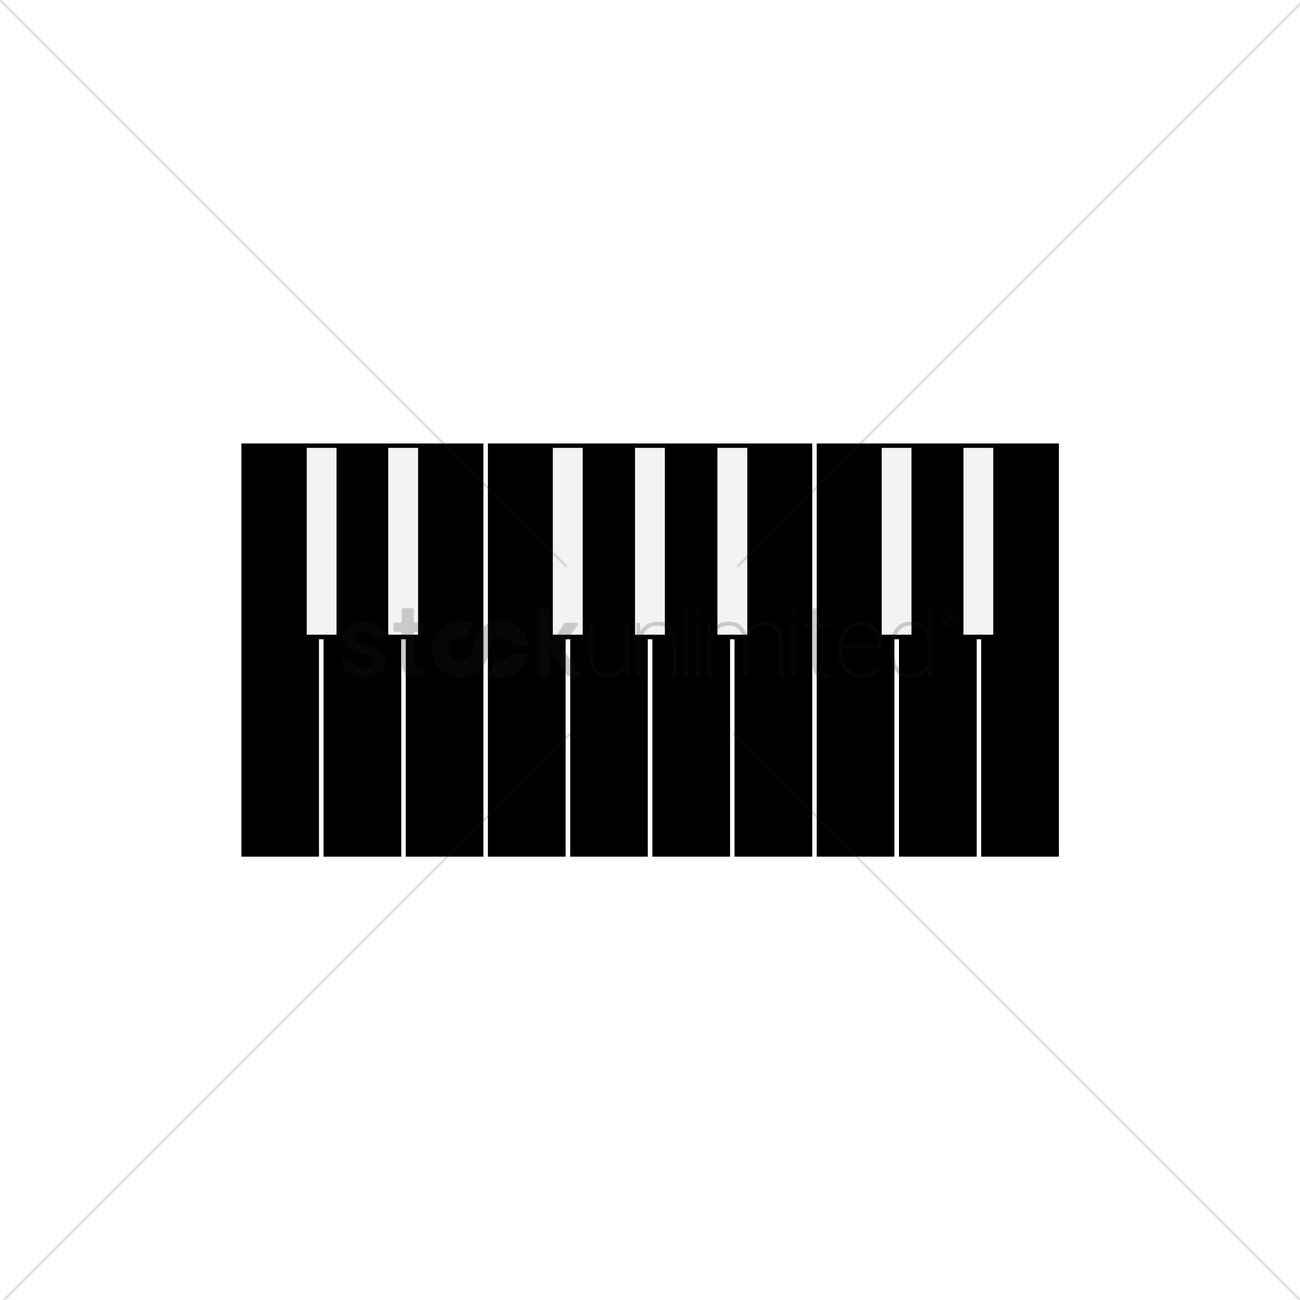 1300x1300 Free Silhouette Of Piano Keys Vector Image